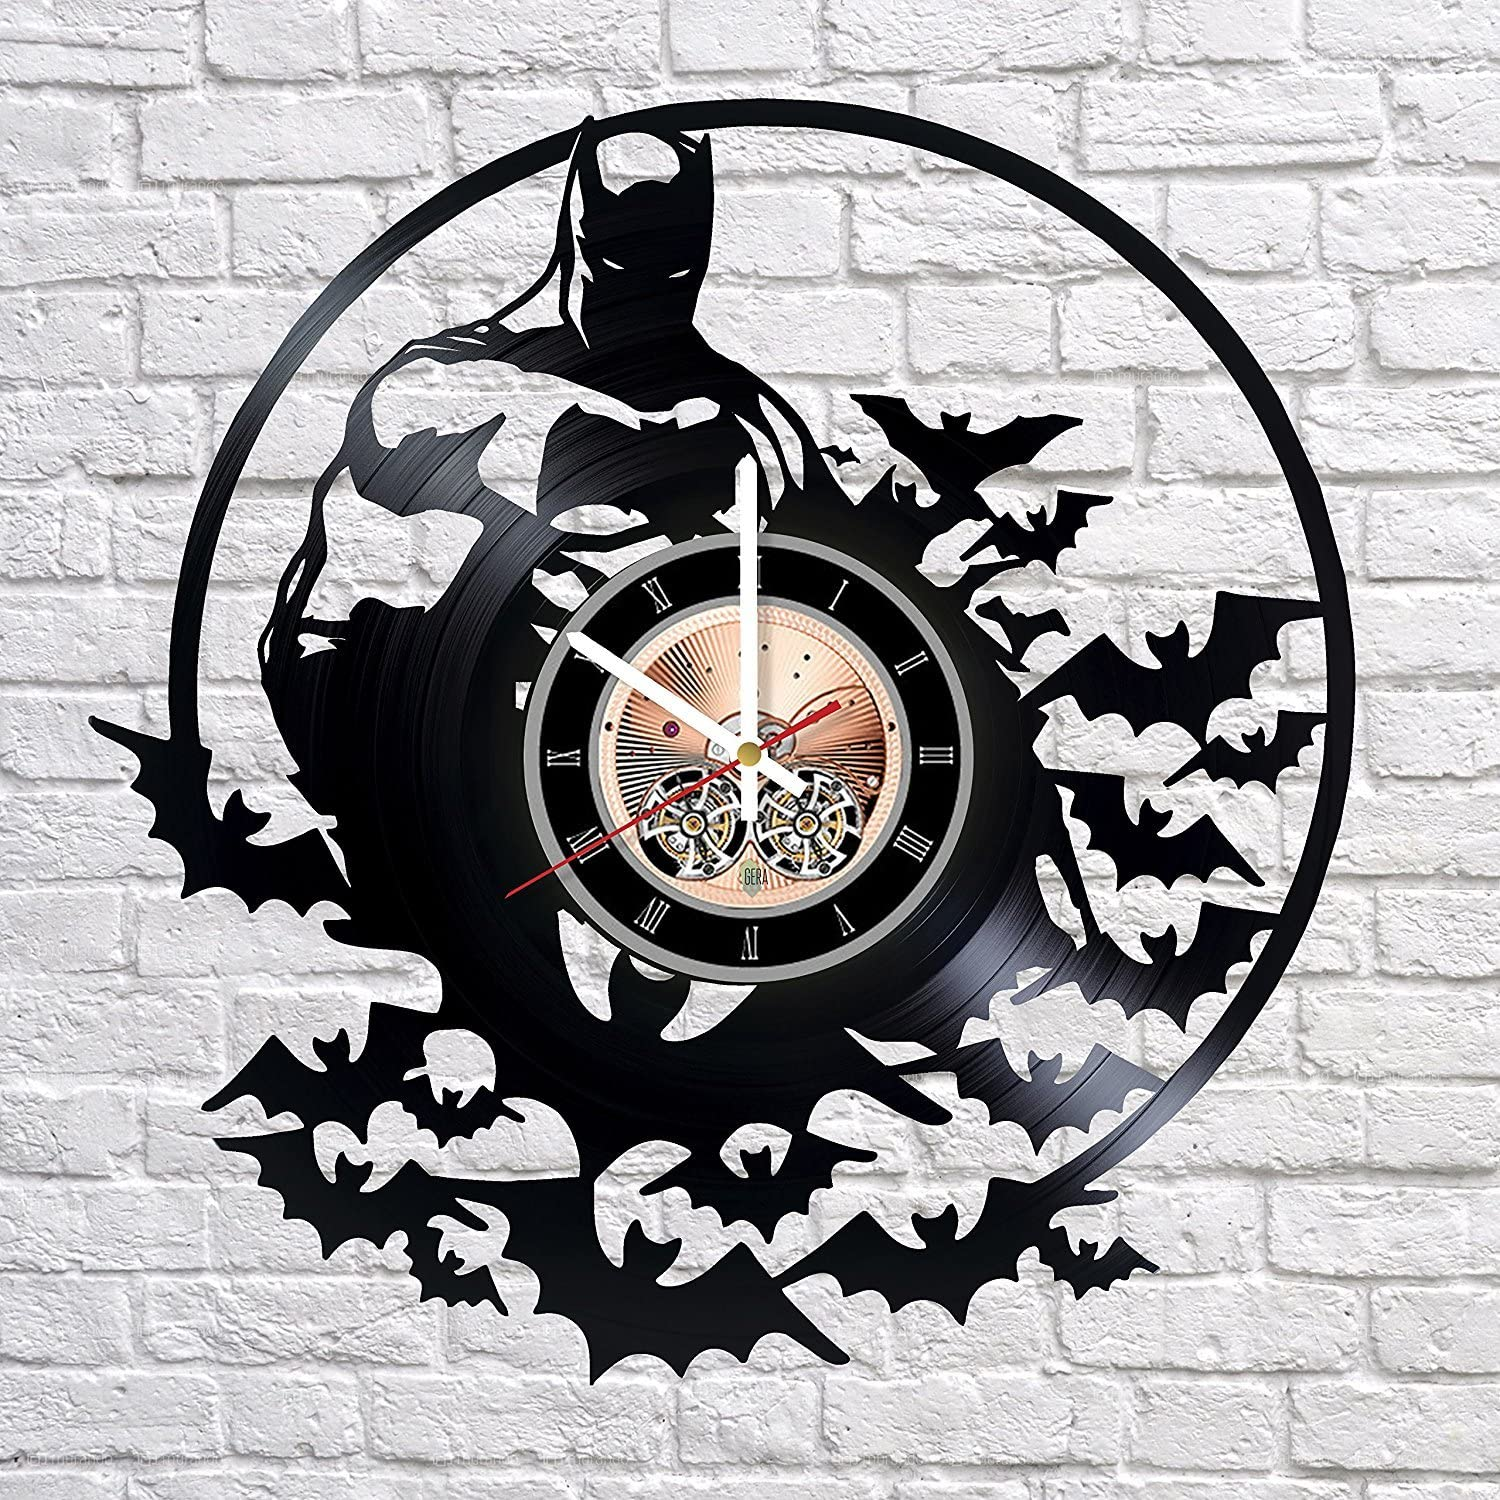 Batman Wall Clock Made of Vintage Vinyl Records - Stylish Clock and Amazing Gifts Idea – Unique Home Decor – Personalized Presents for Men Women Kids - Living Room Bedroom Art